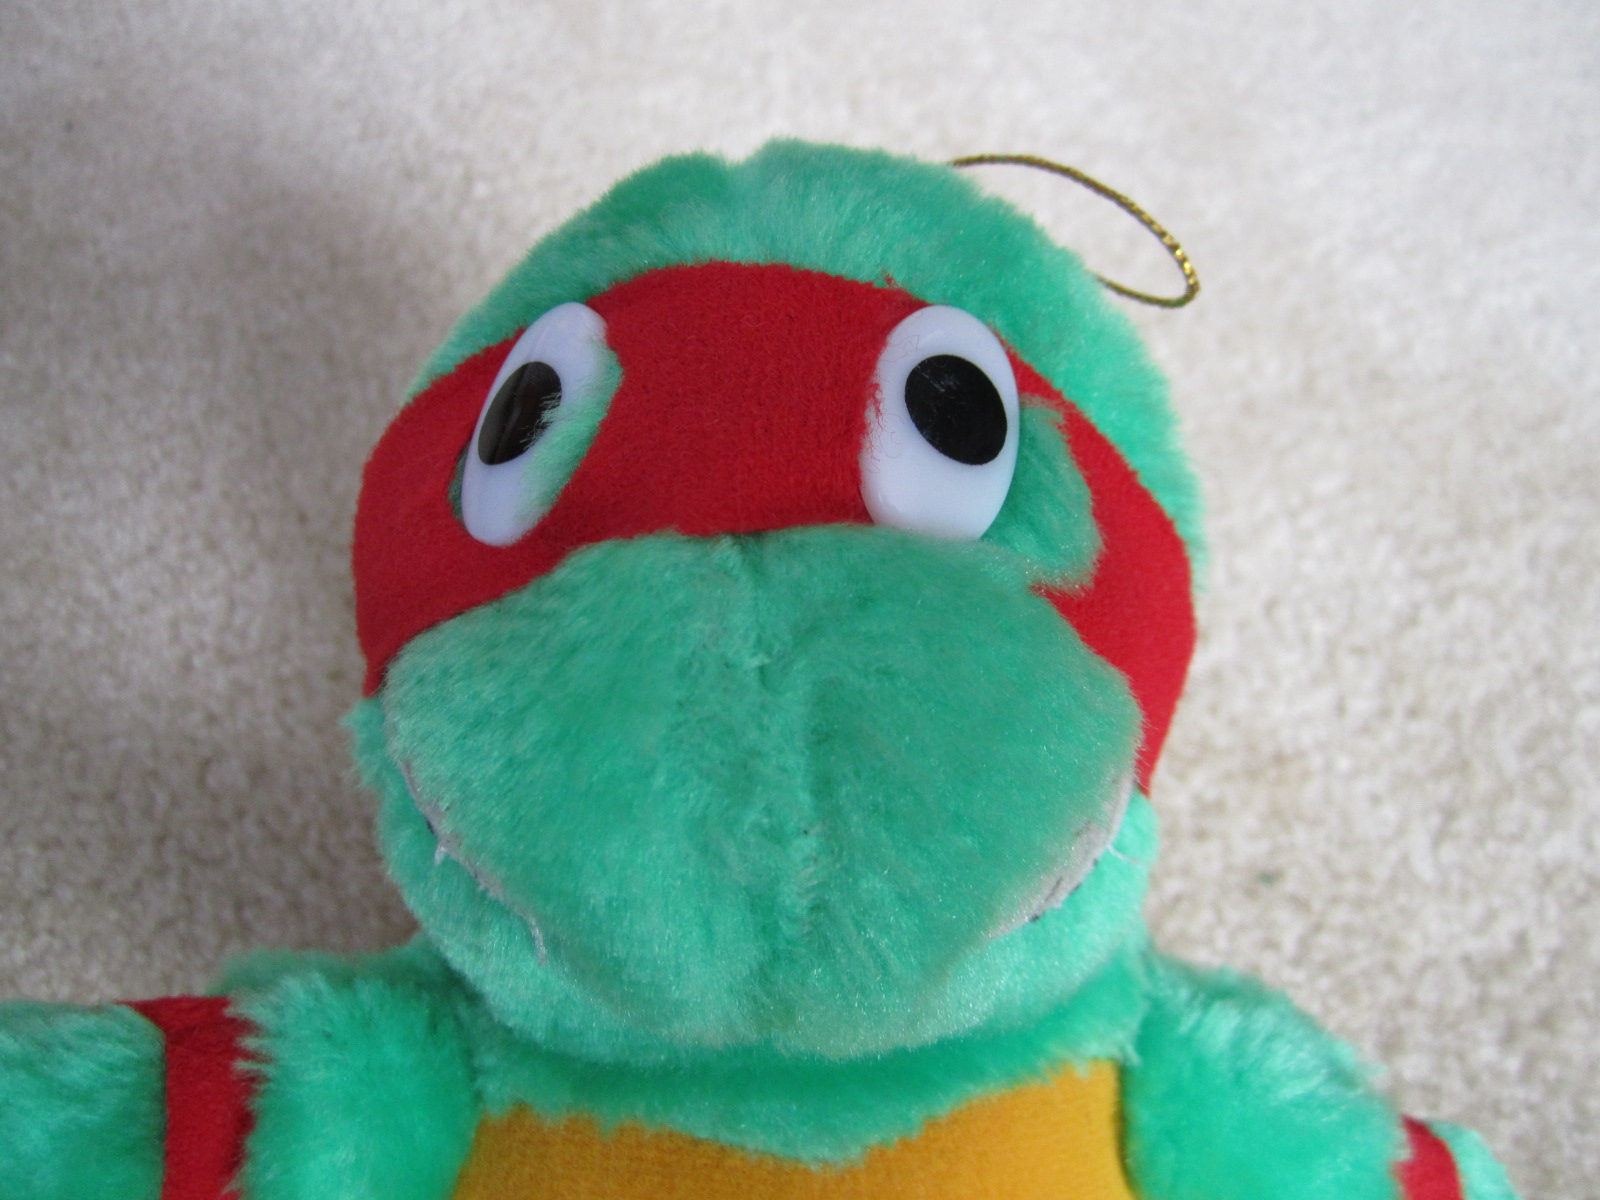 Crane Tmnt Toys : The sewer den issue goodnight turtle